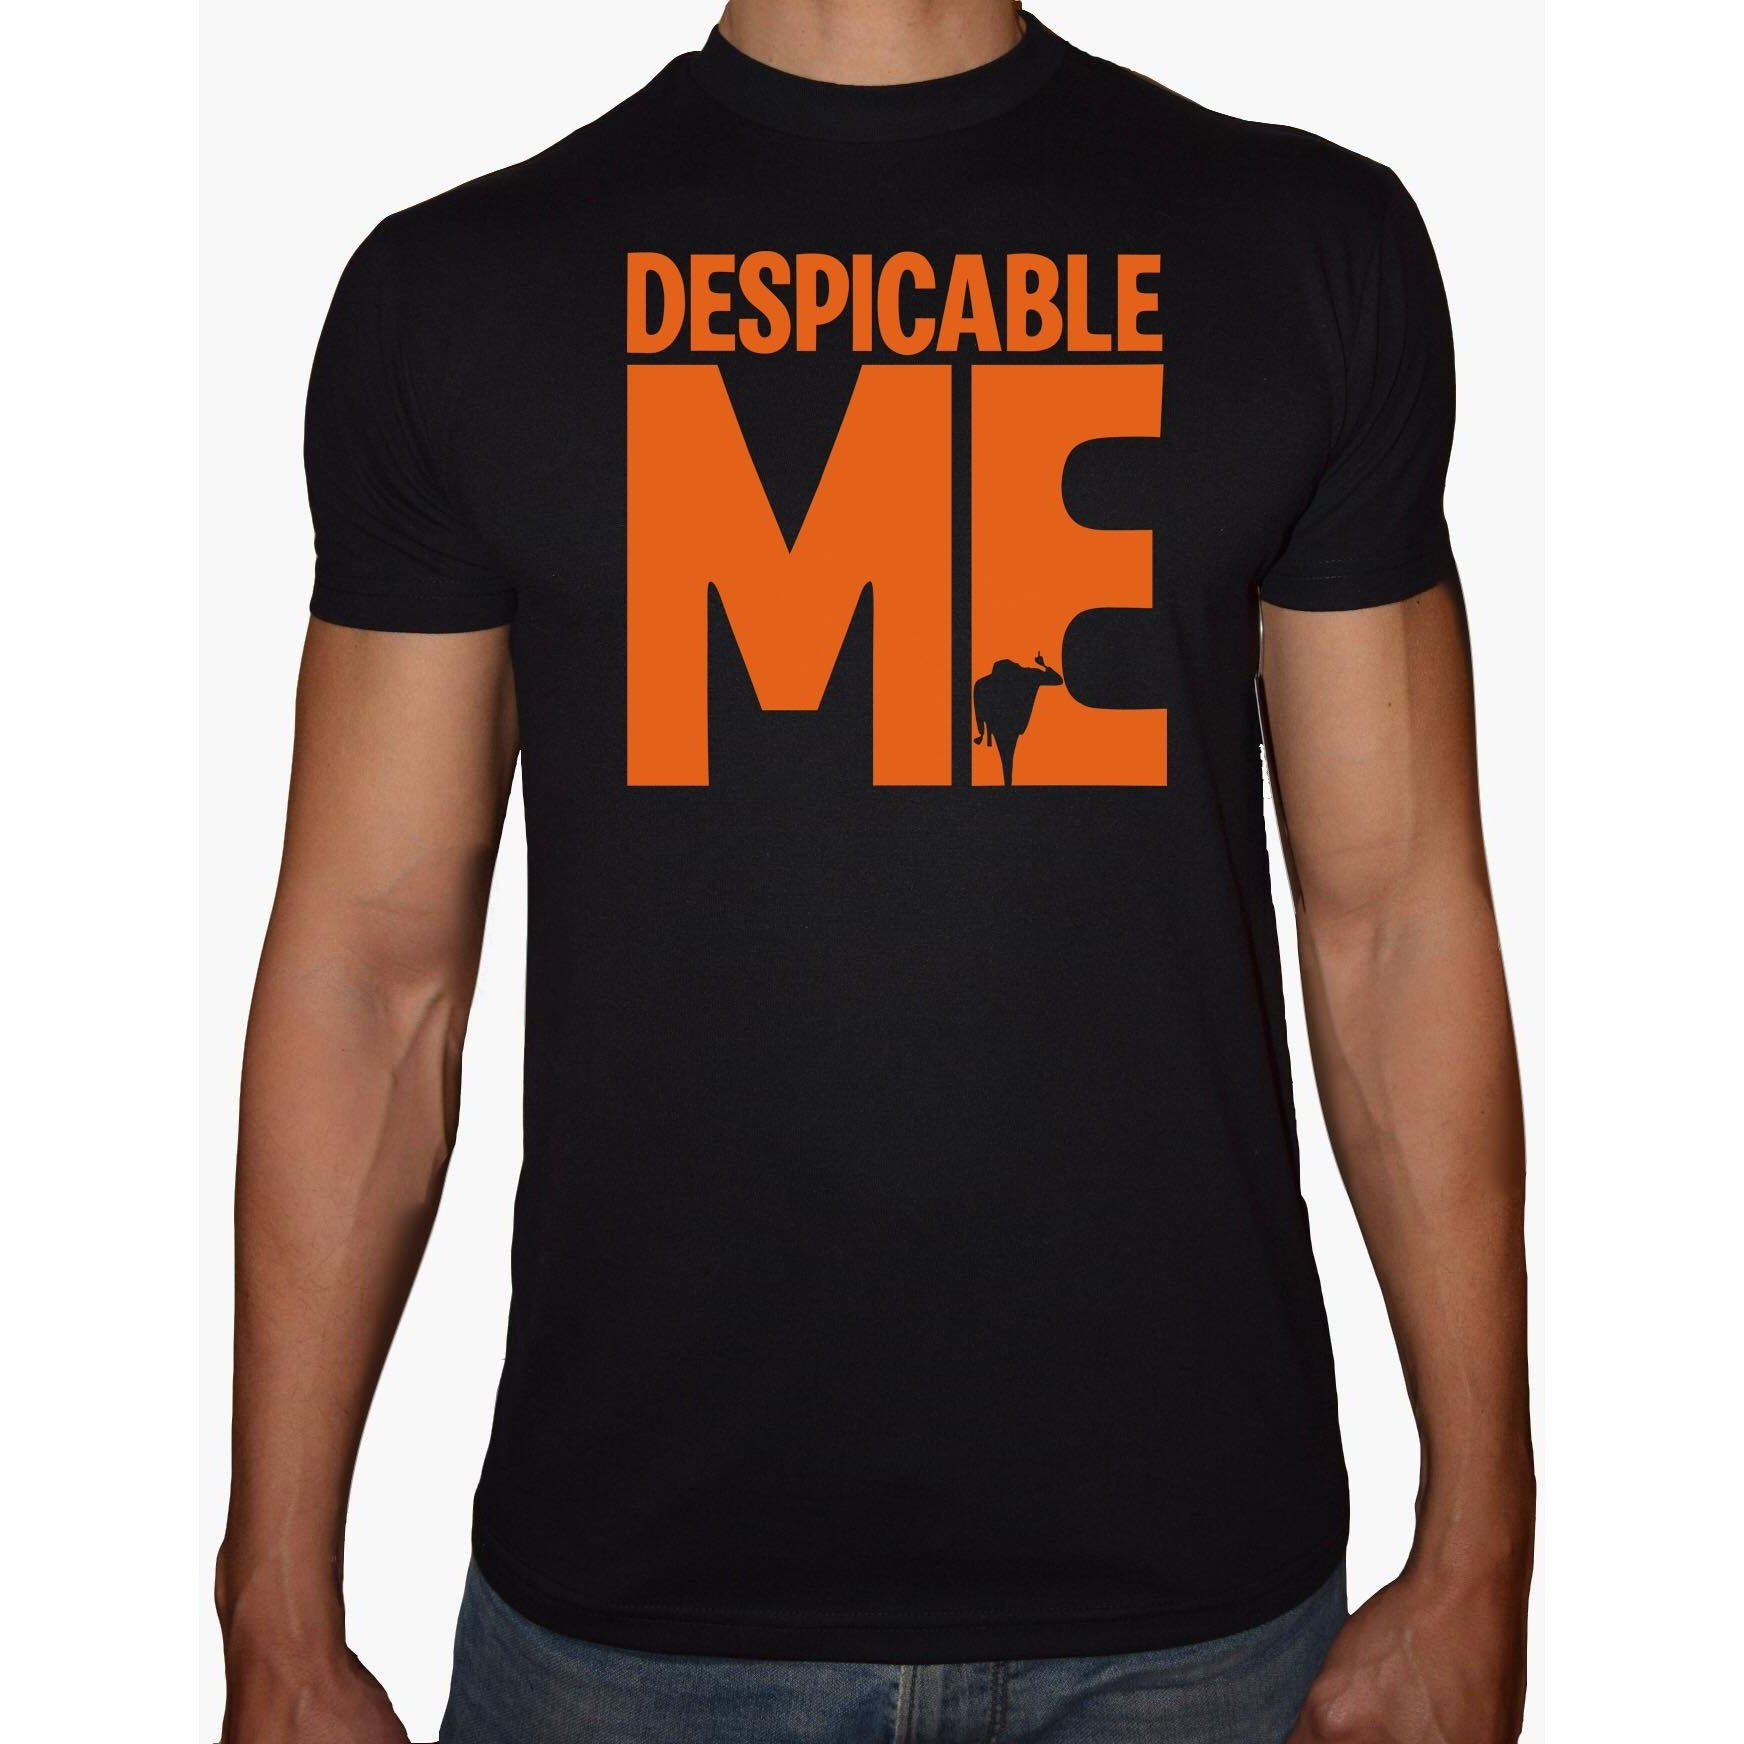 Phoenix BLACK Round Neck Printed T-Shirt Men (Despicable)